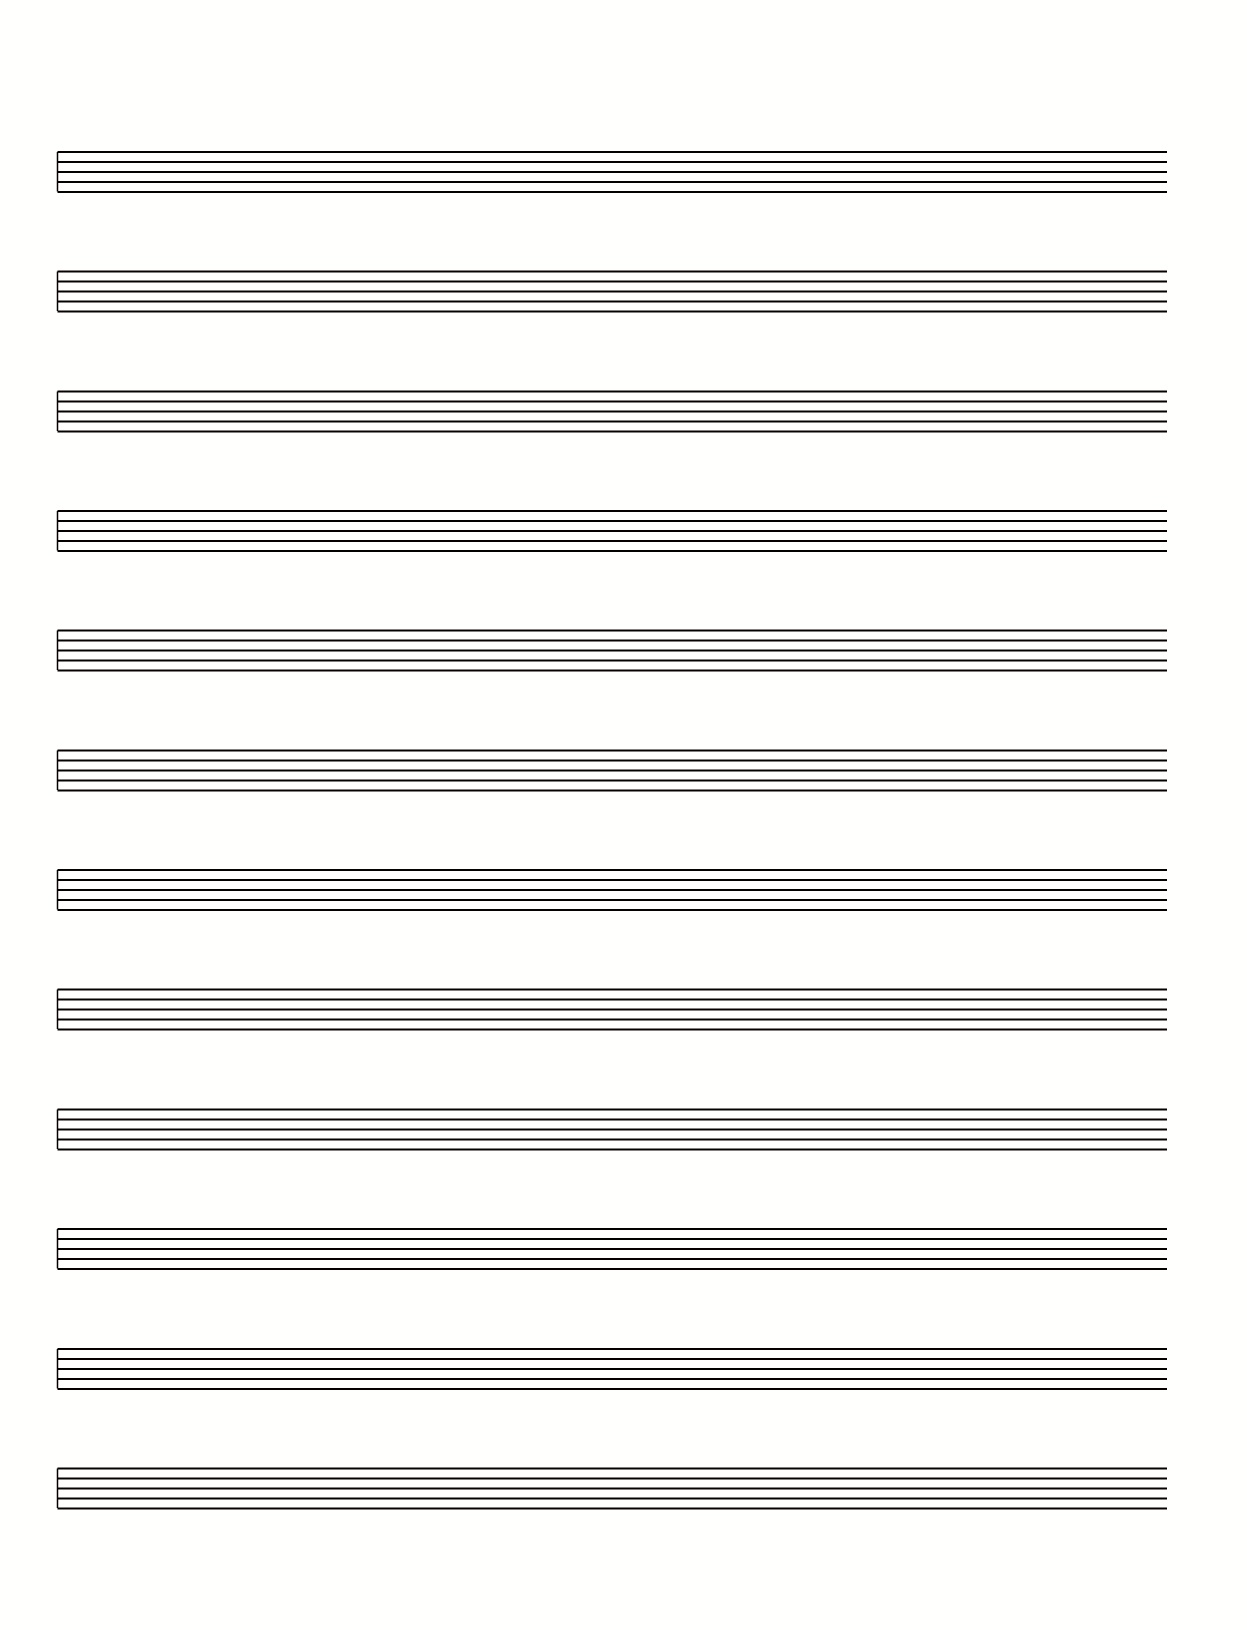 Printable Blank Tab Sheets